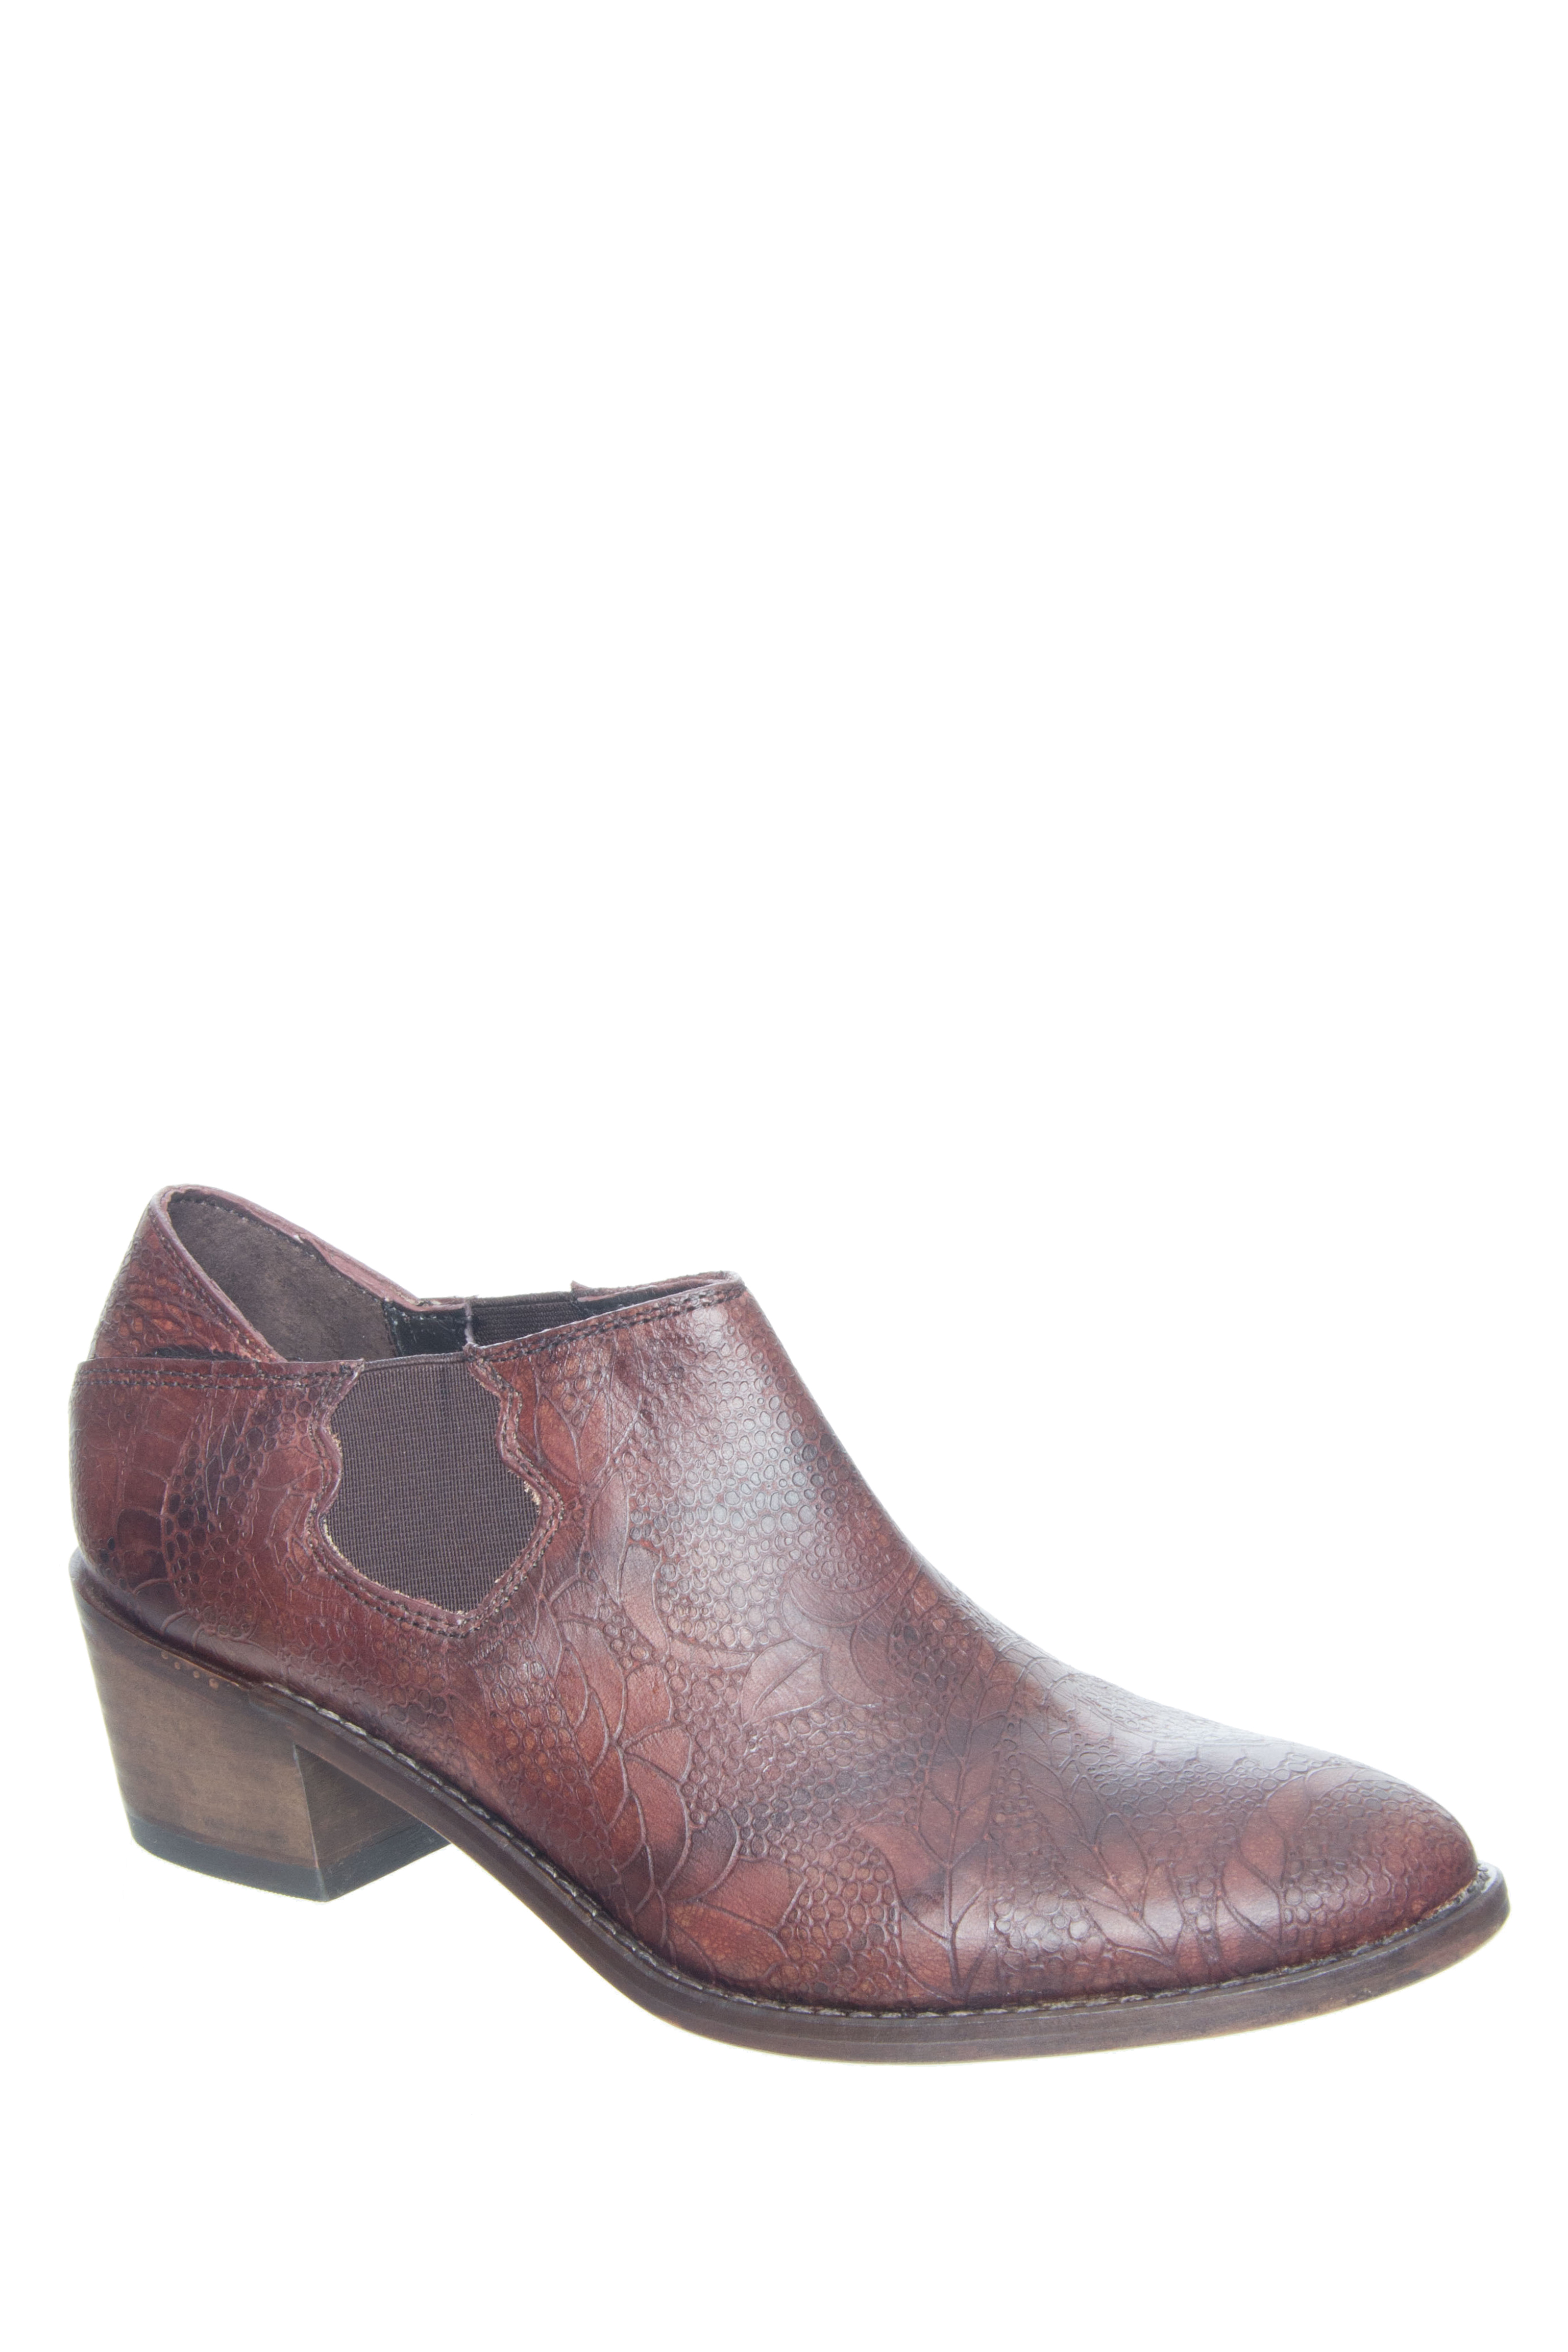 Wolverine 1883 Alice Slip On Boots - Brown